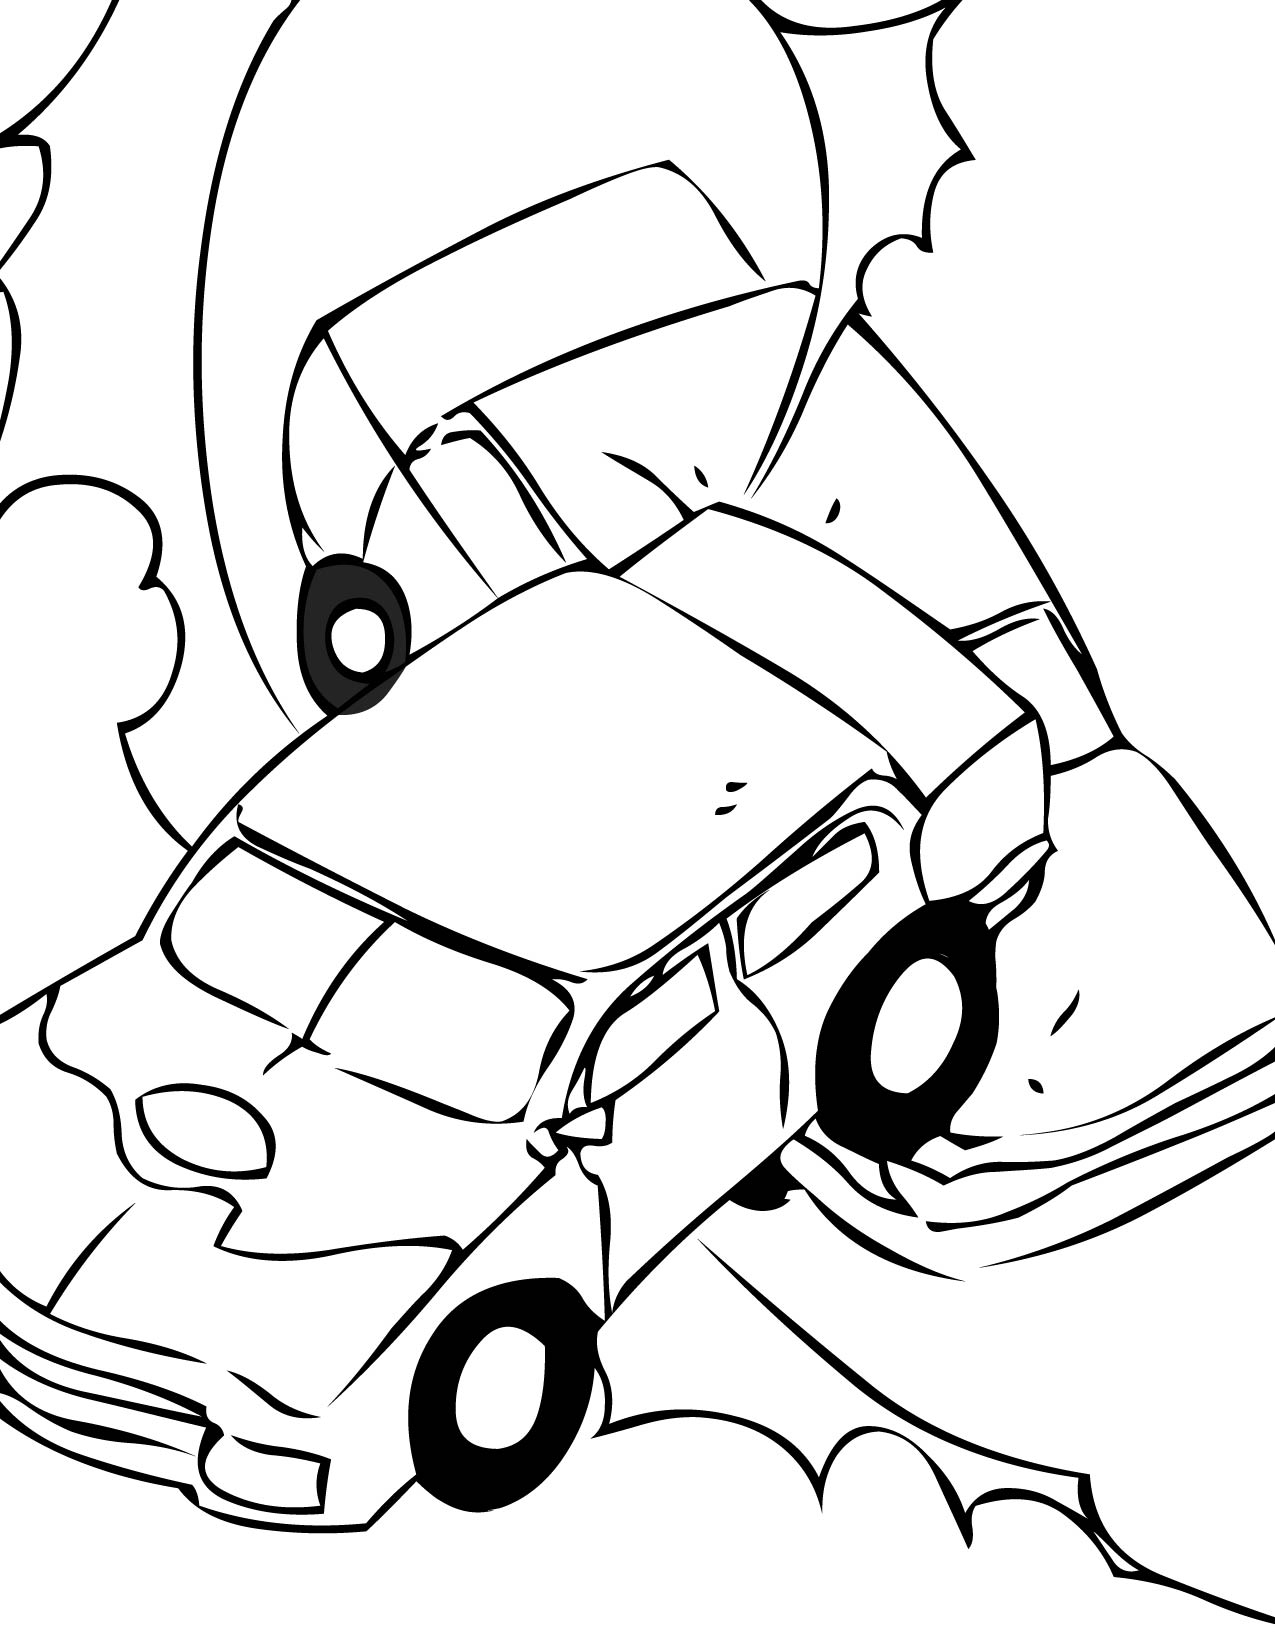 The best free derby coloring page images download from 111 free